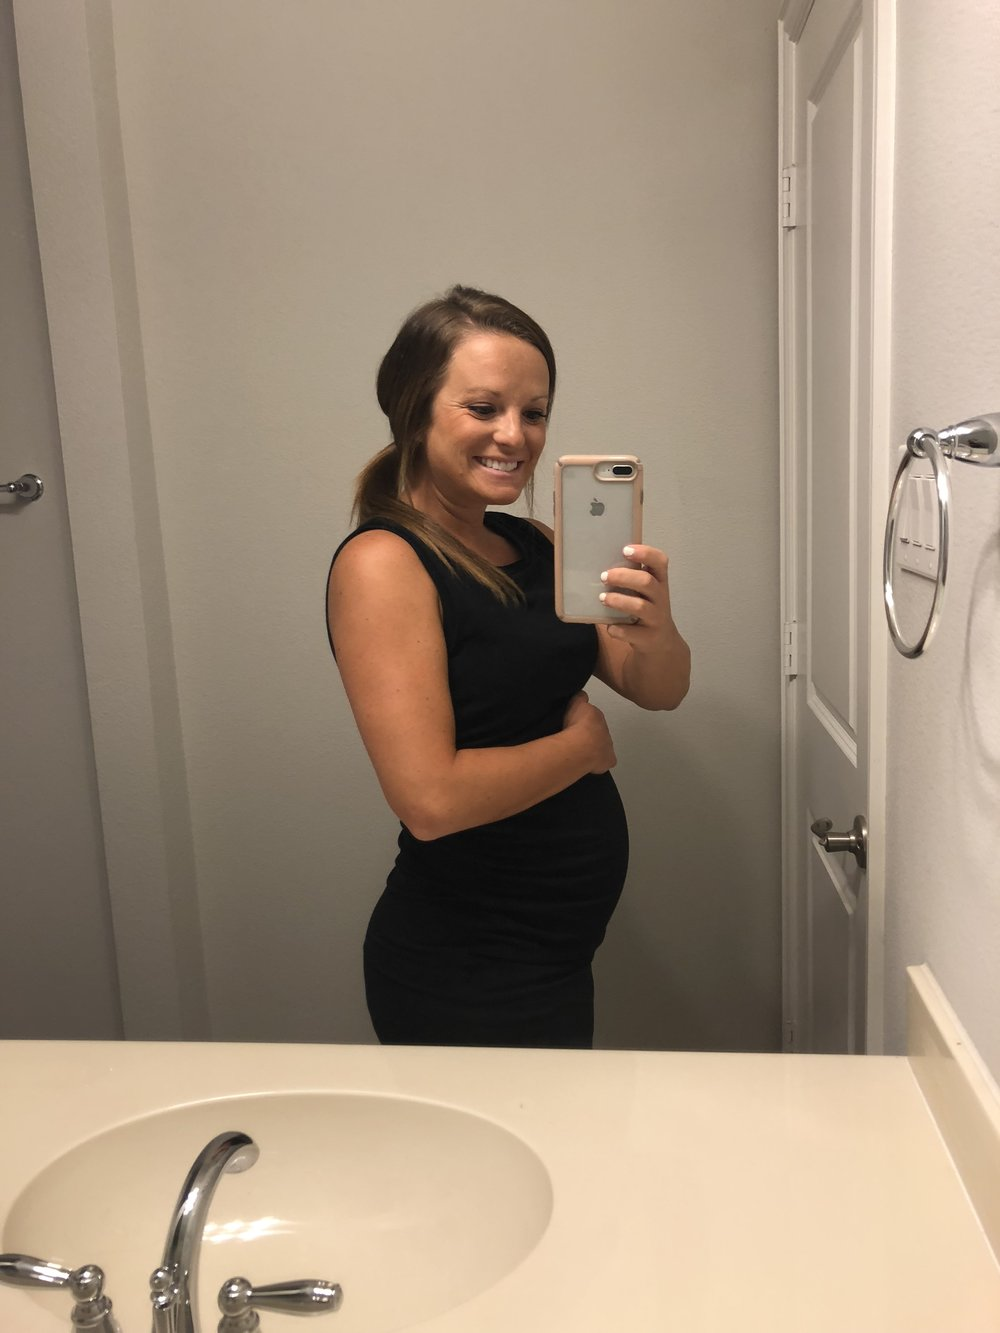 Baby girl really popped at about 21 weeks!